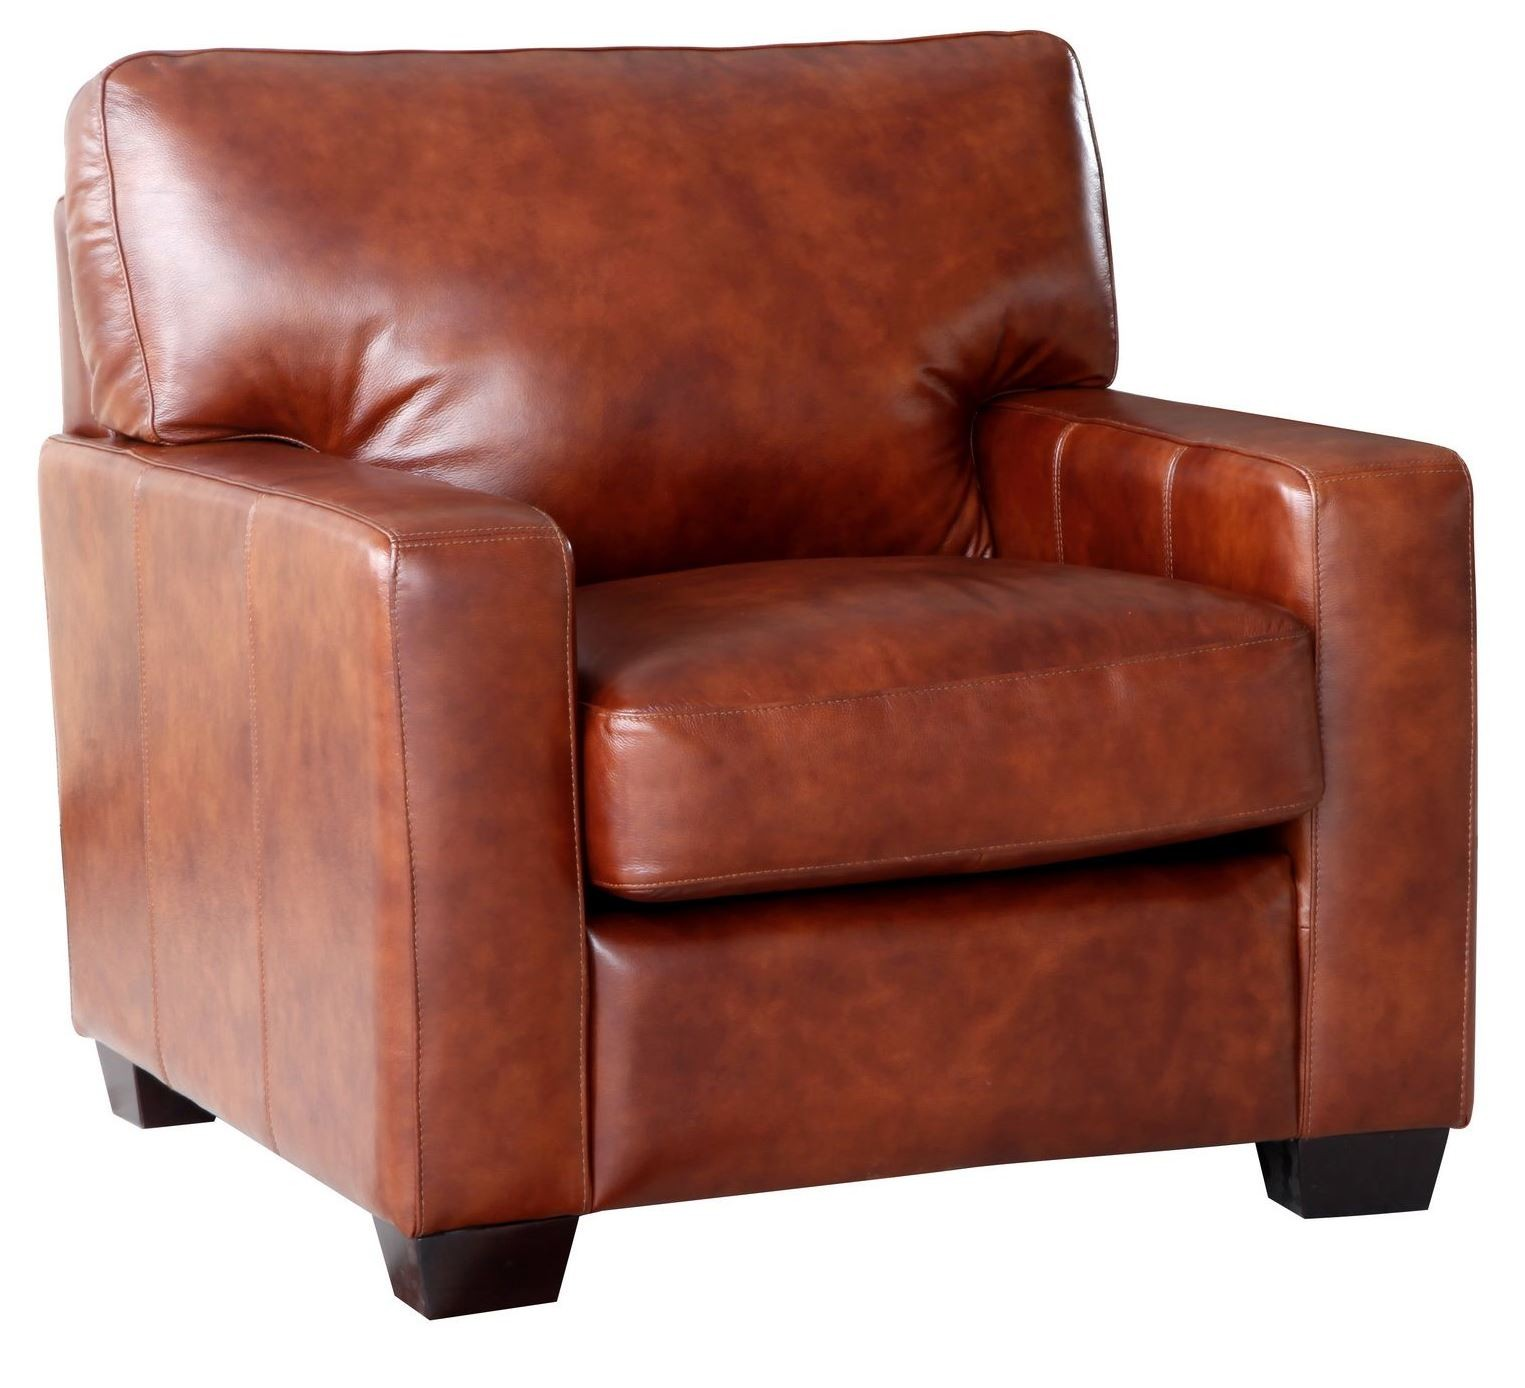 aberdeen auburn top grain leather chair from lazzaro coleman furniture. Black Bedroom Furniture Sets. Home Design Ideas